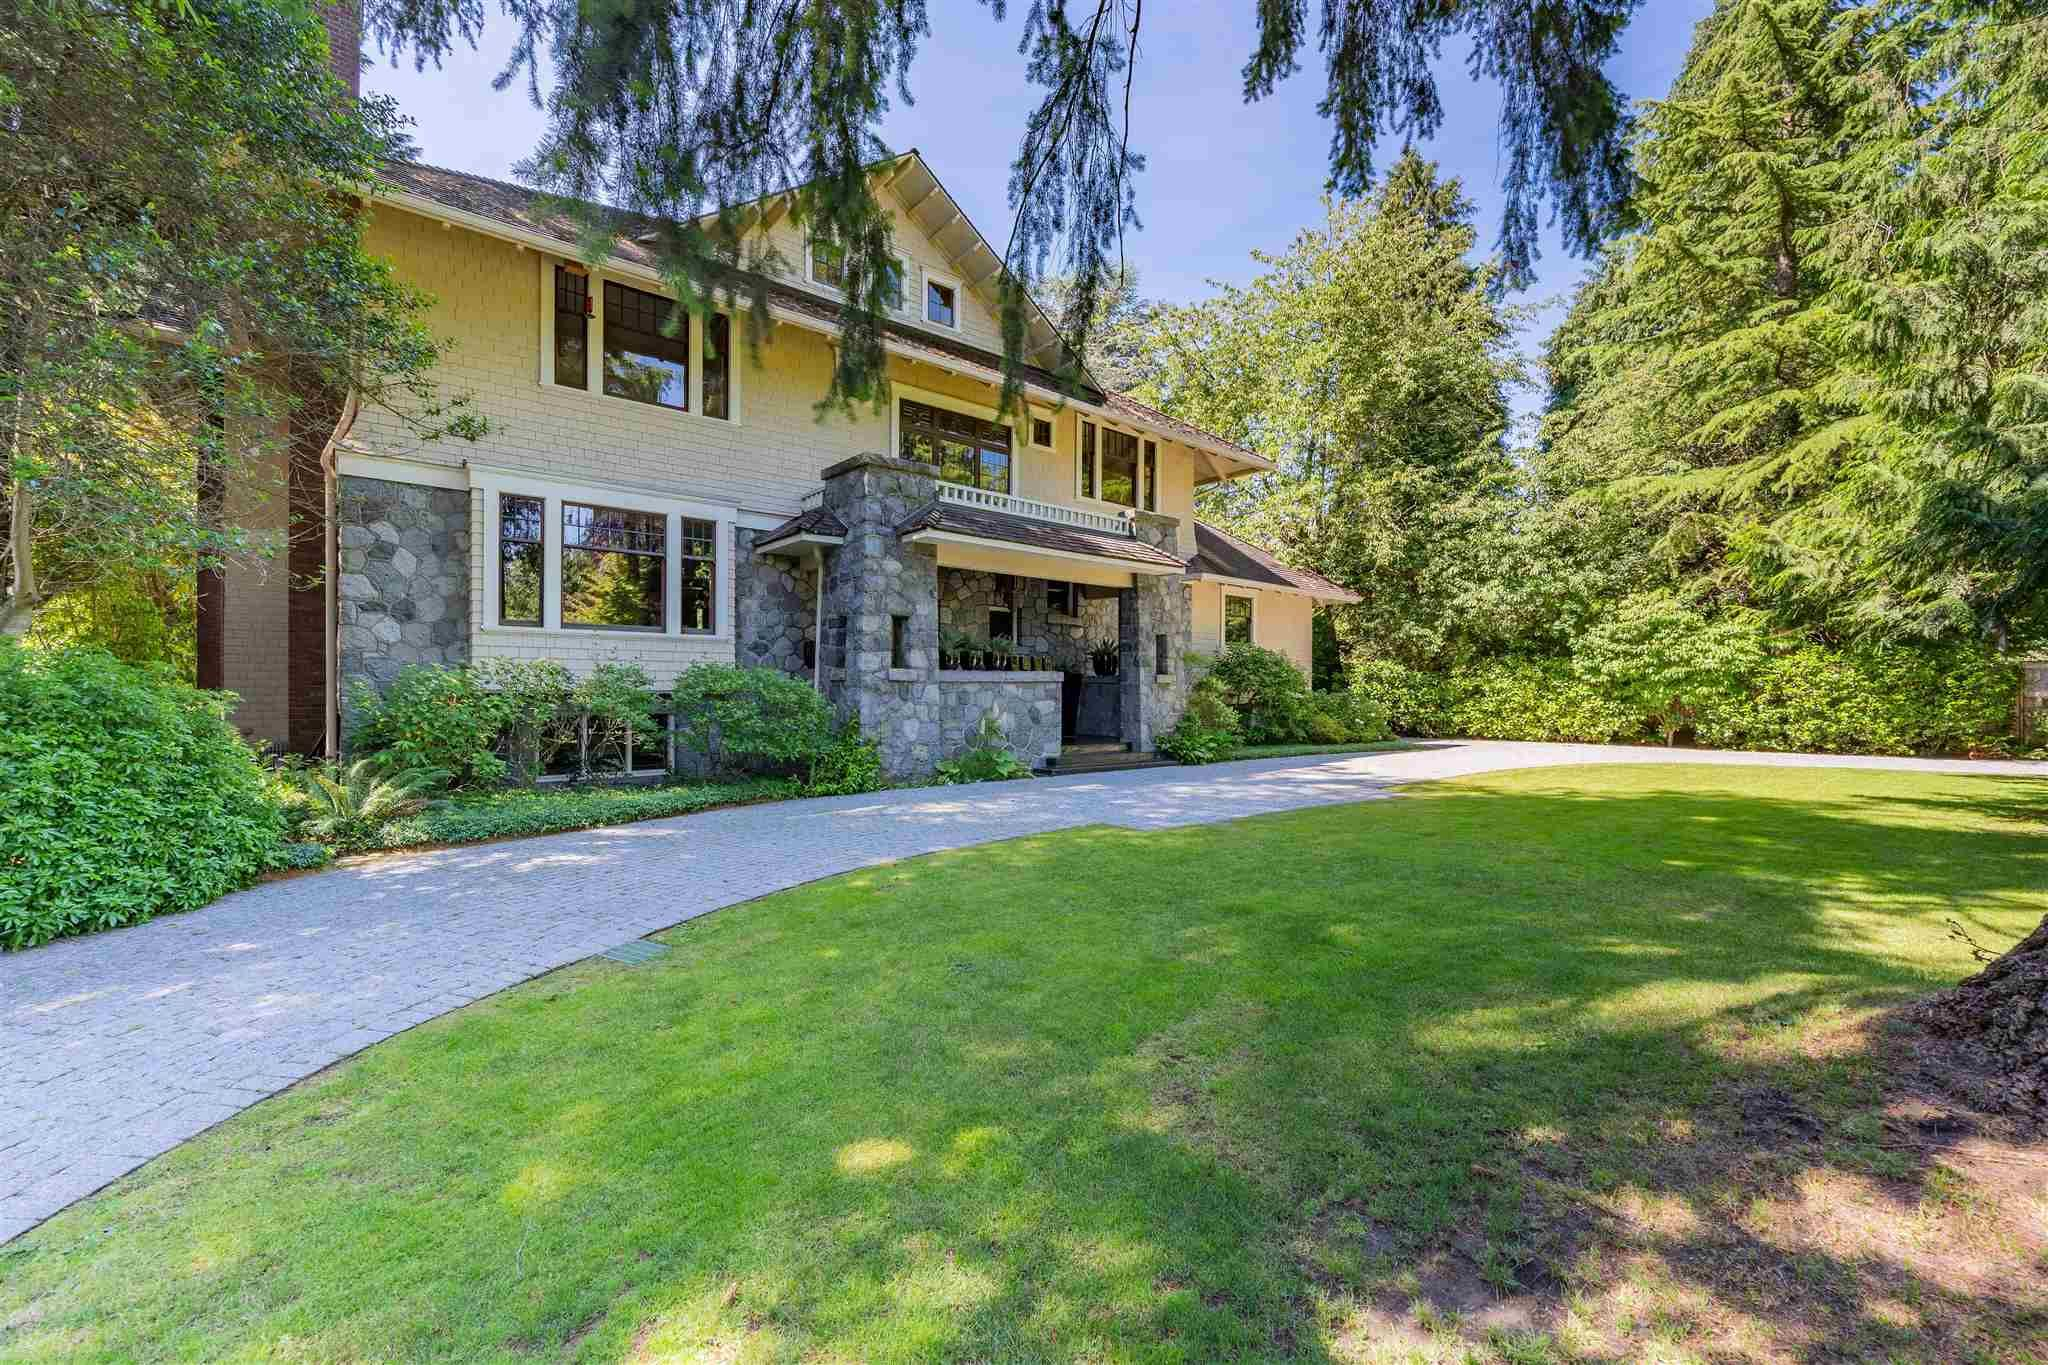 Main Photo: 3369 THE CRESCENT in Vancouver: Shaughnessy House for sale (Vancouver West)  : MLS®# R2615659